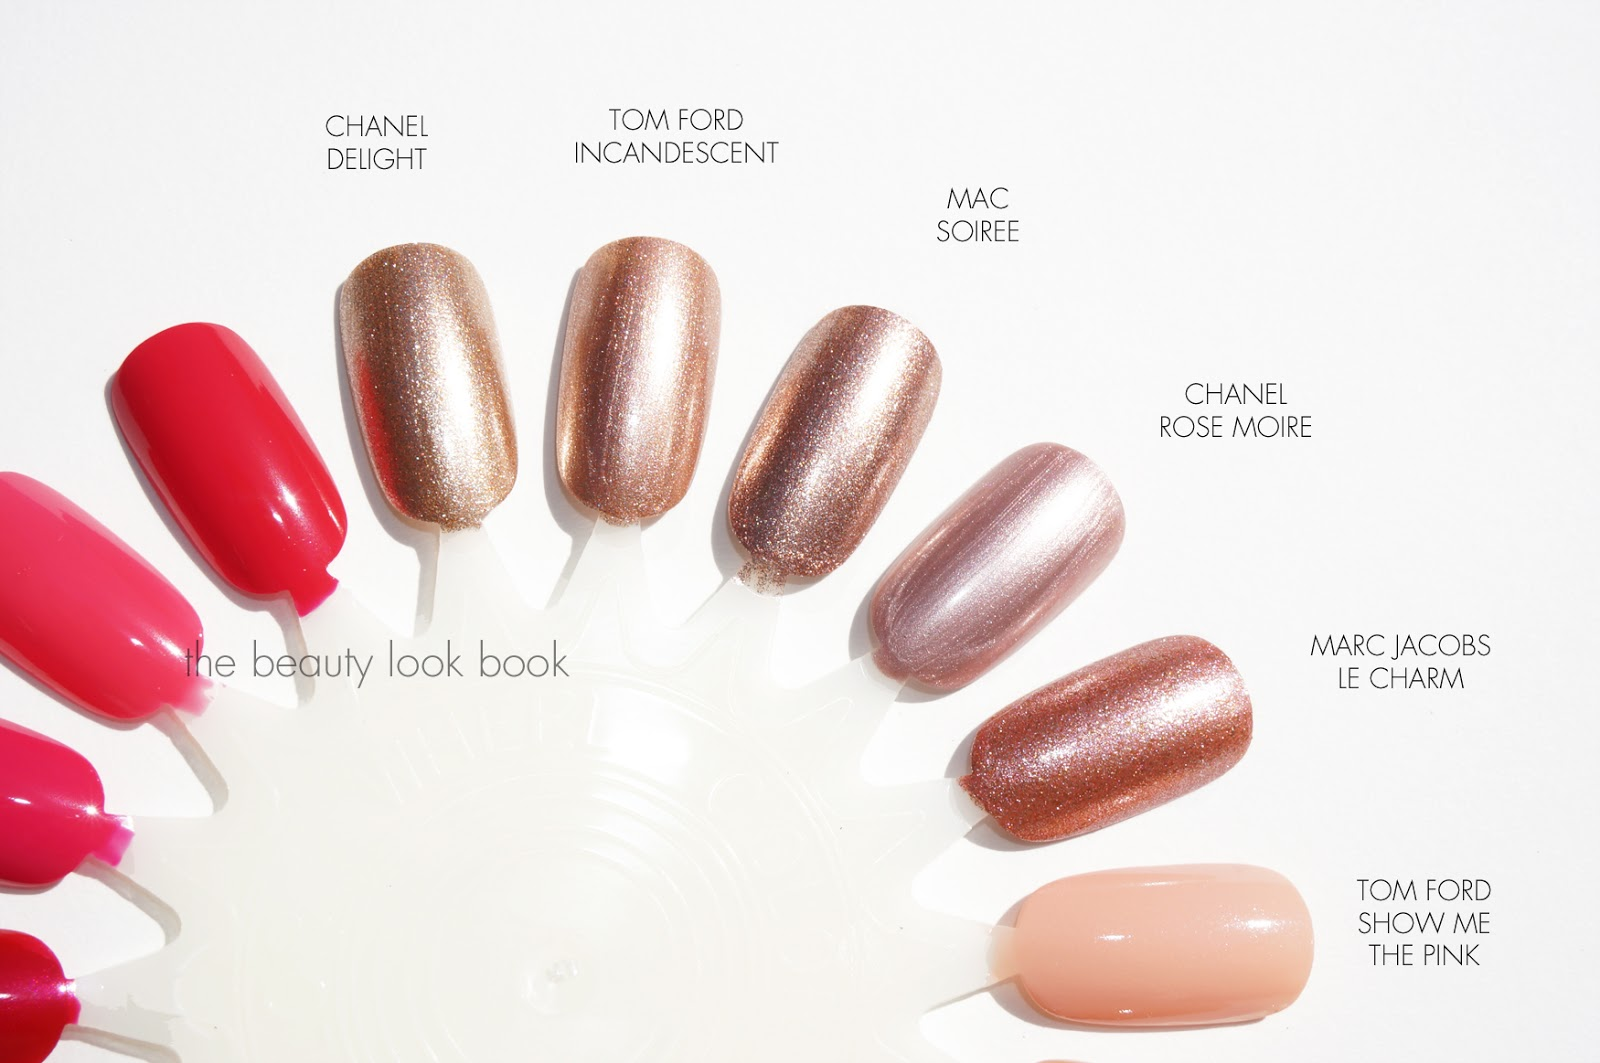 Tom Ford Spring Nail Polish Comparisons to Chanel, MAC, Marc Jacobs ...